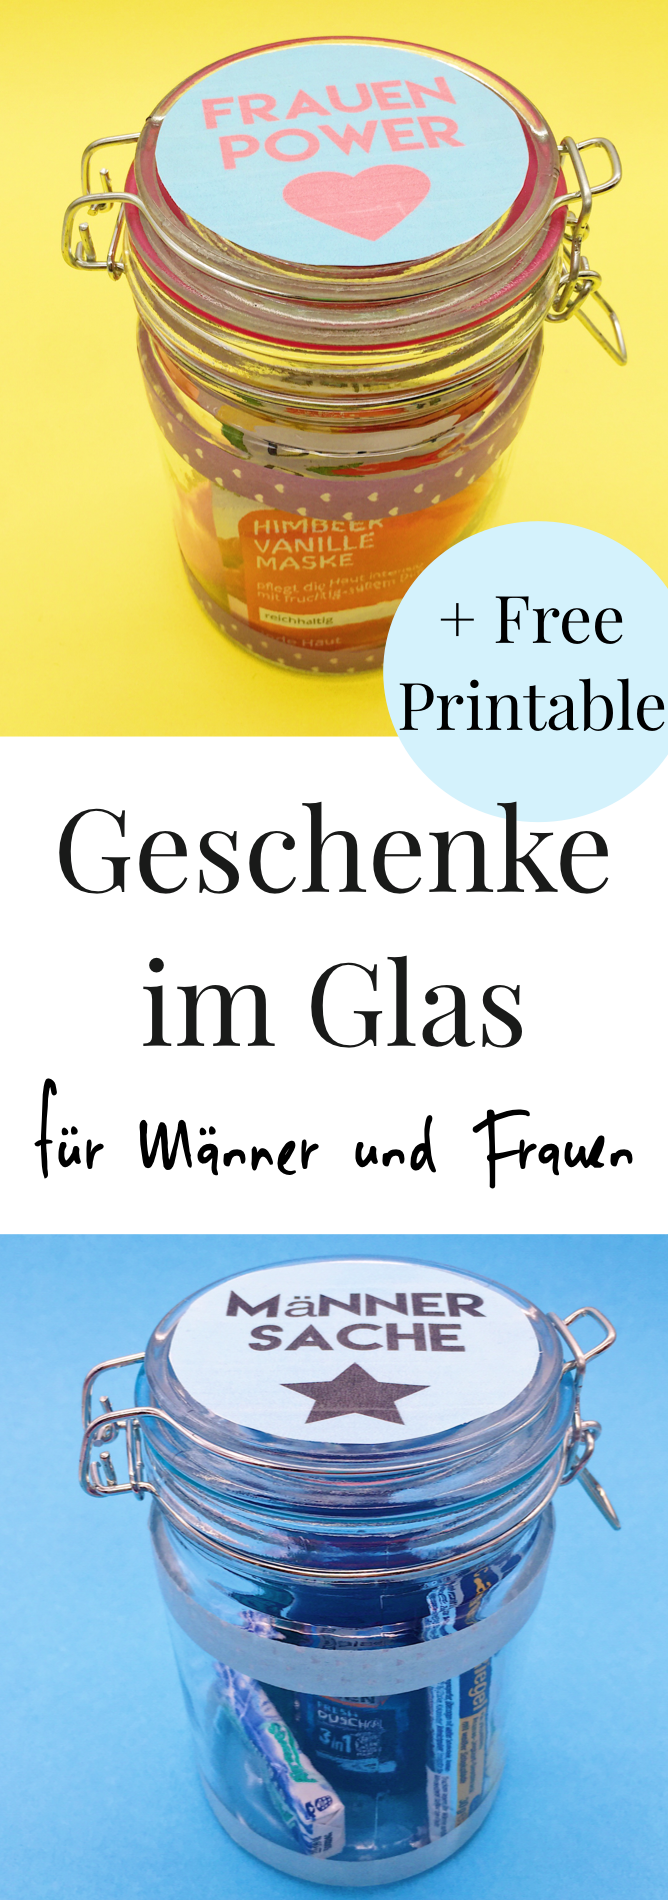 diy geschenke im glas selber machen happy dings diy tipps pinterest geschenkideen f r. Black Bedroom Furniture Sets. Home Design Ideas